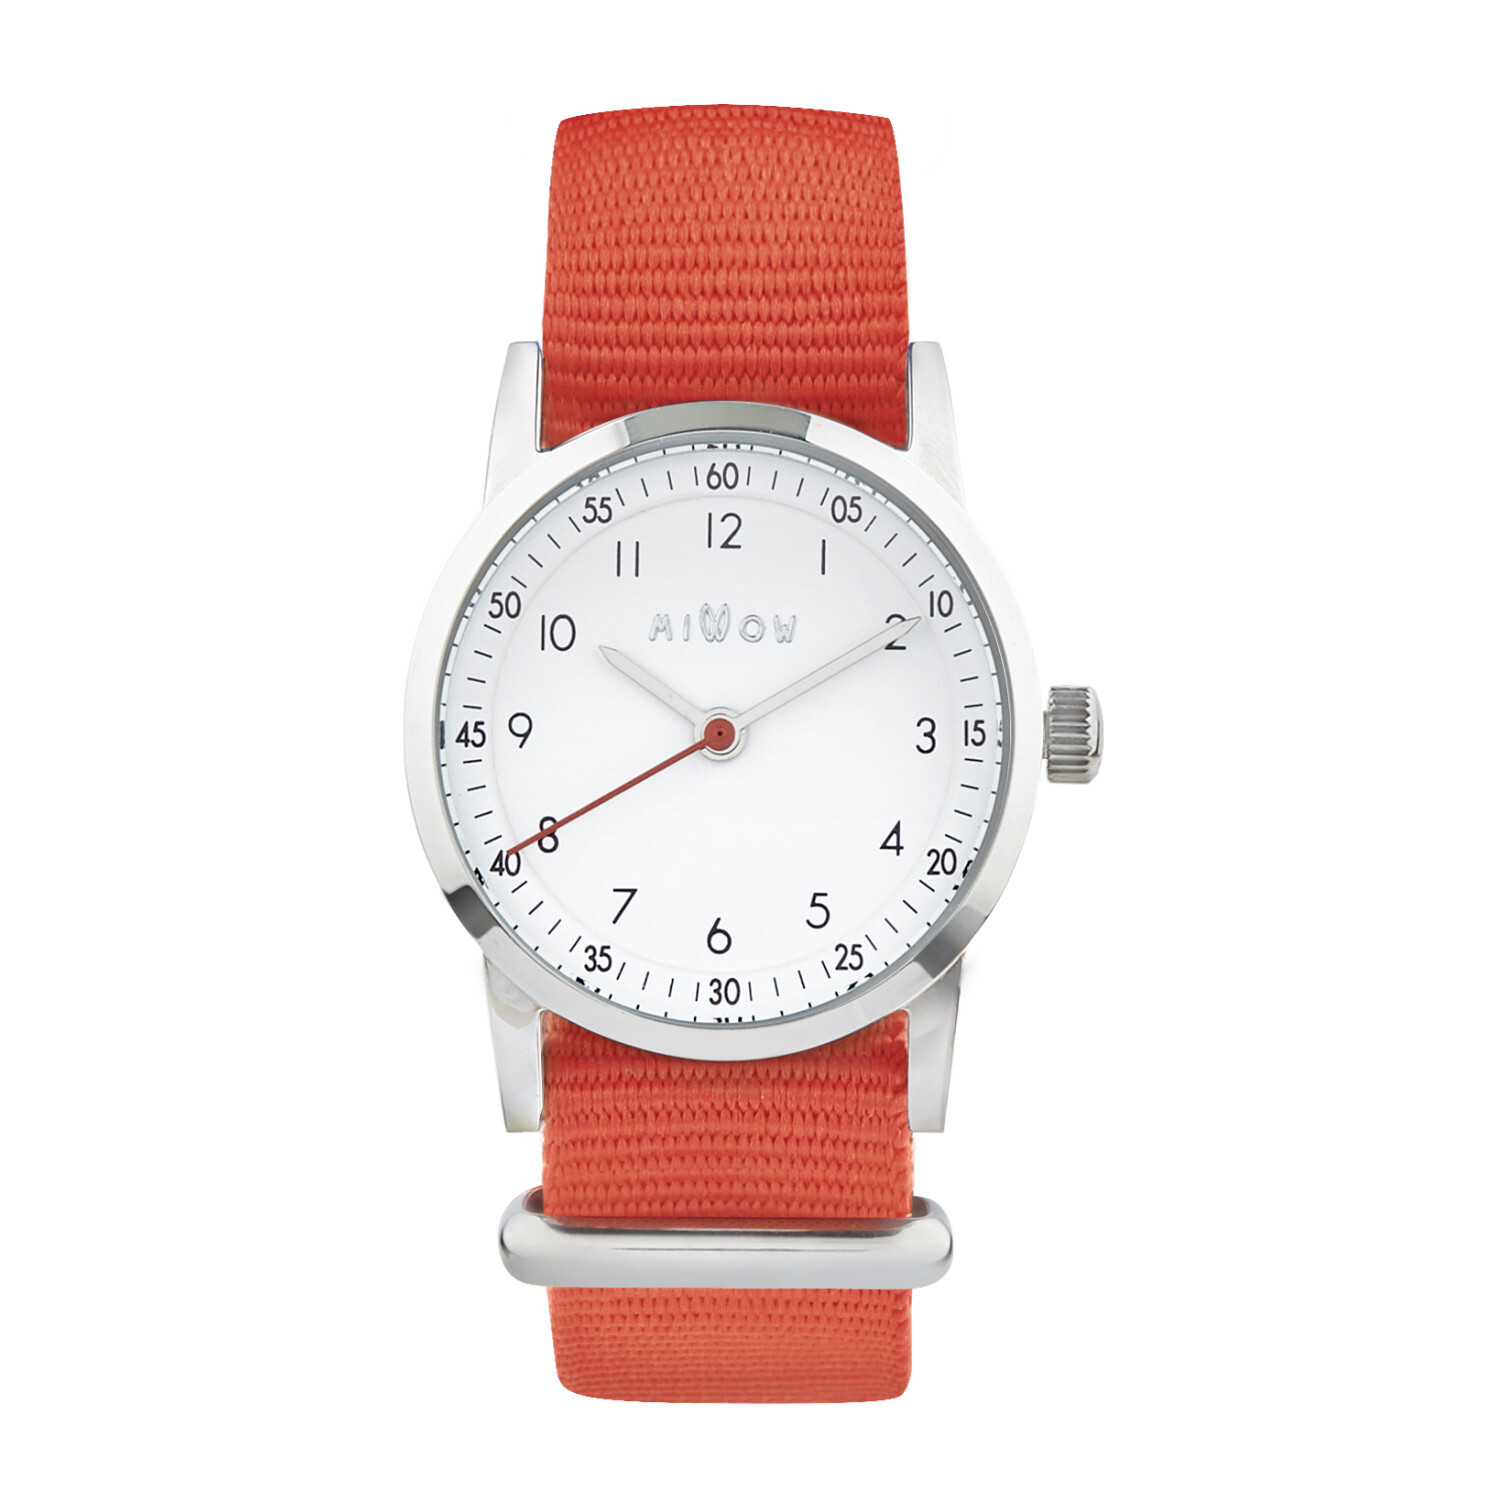 Millow Classic Watch, Paris Red and Silver